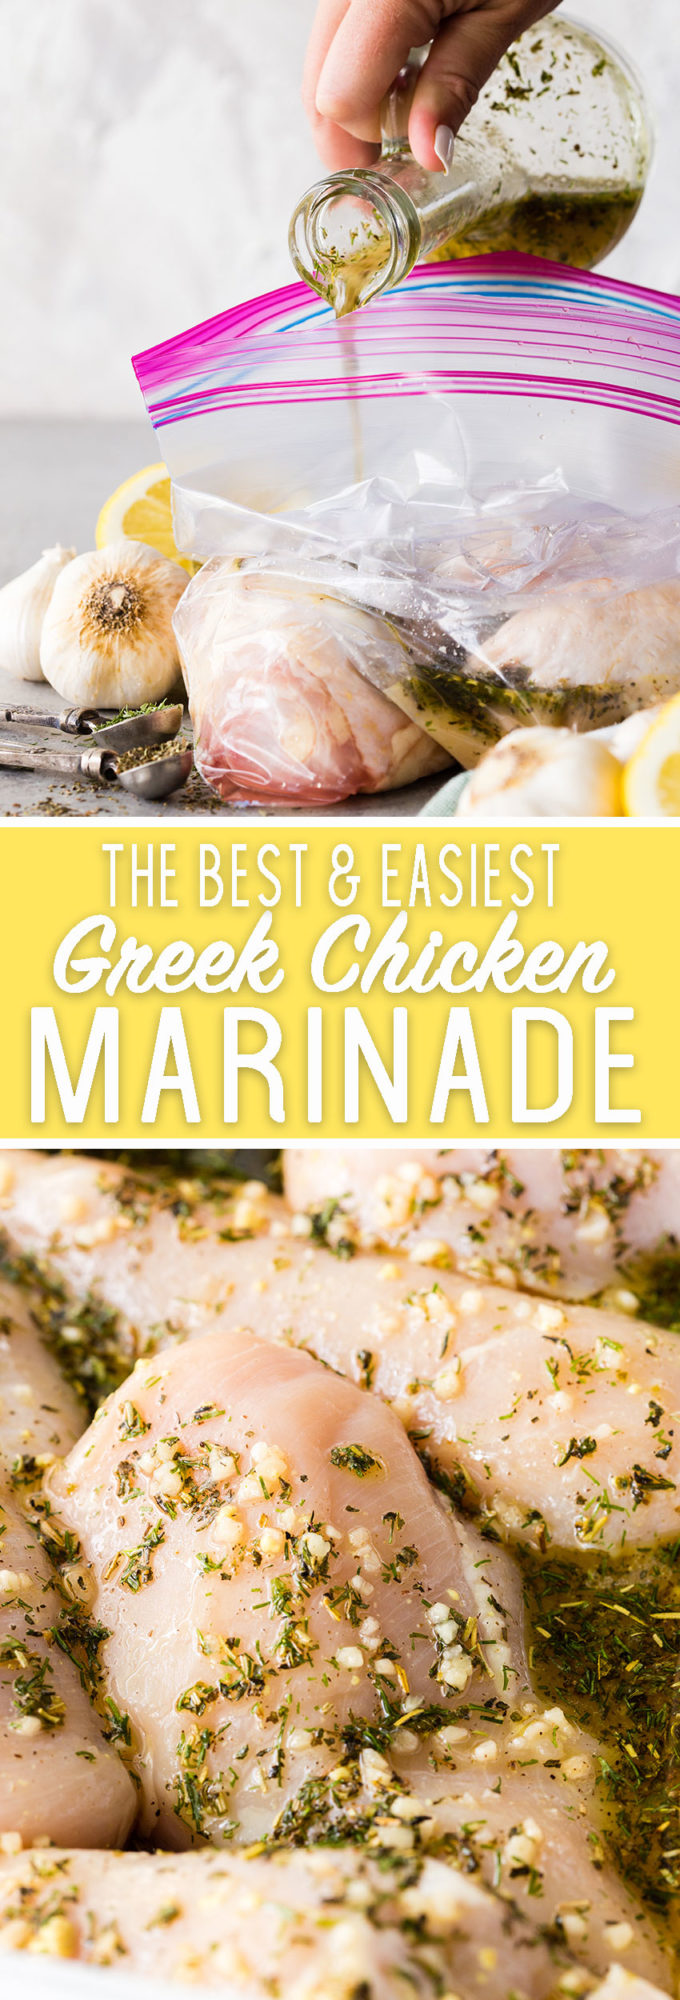 The easiest and best greek chicken marinade also doubles as a dressing!